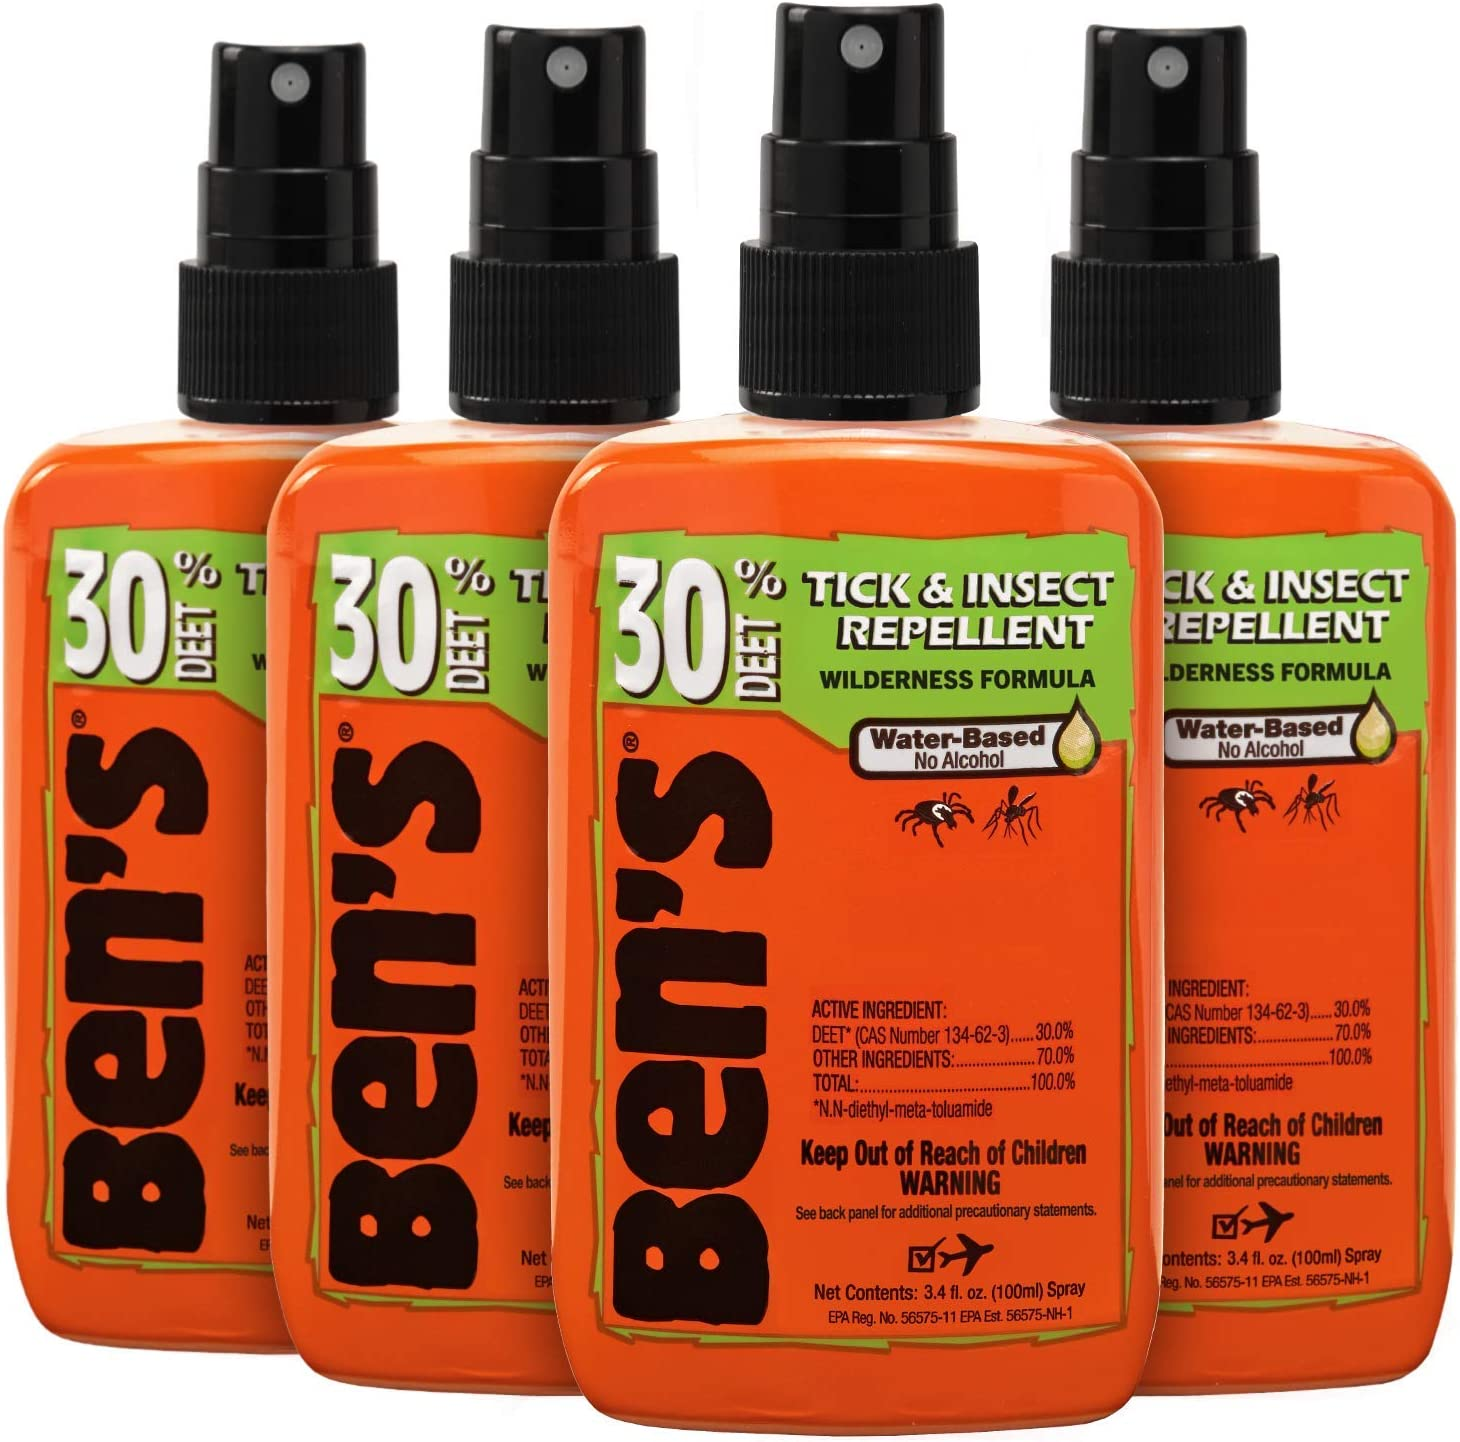 Ben's 30 Insect Repellent Pack 3.4 oz (Pack of 4)